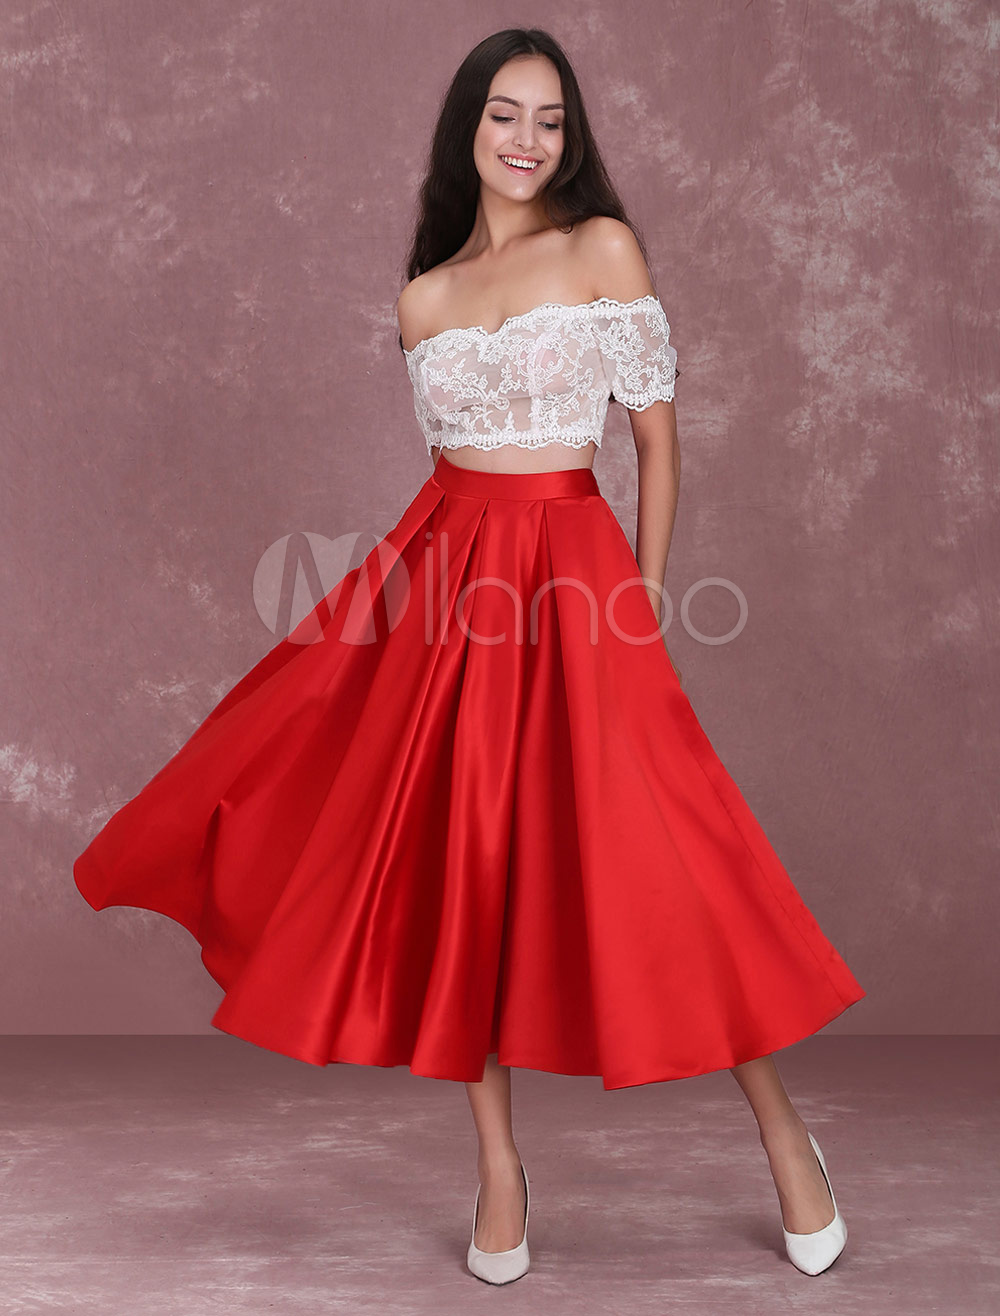 d0224c17a5 2 Piece Homecoming Dresses Off The Shoulder Lace Illusion Red Satin Skirt  Pleated Crop Top Prom ...